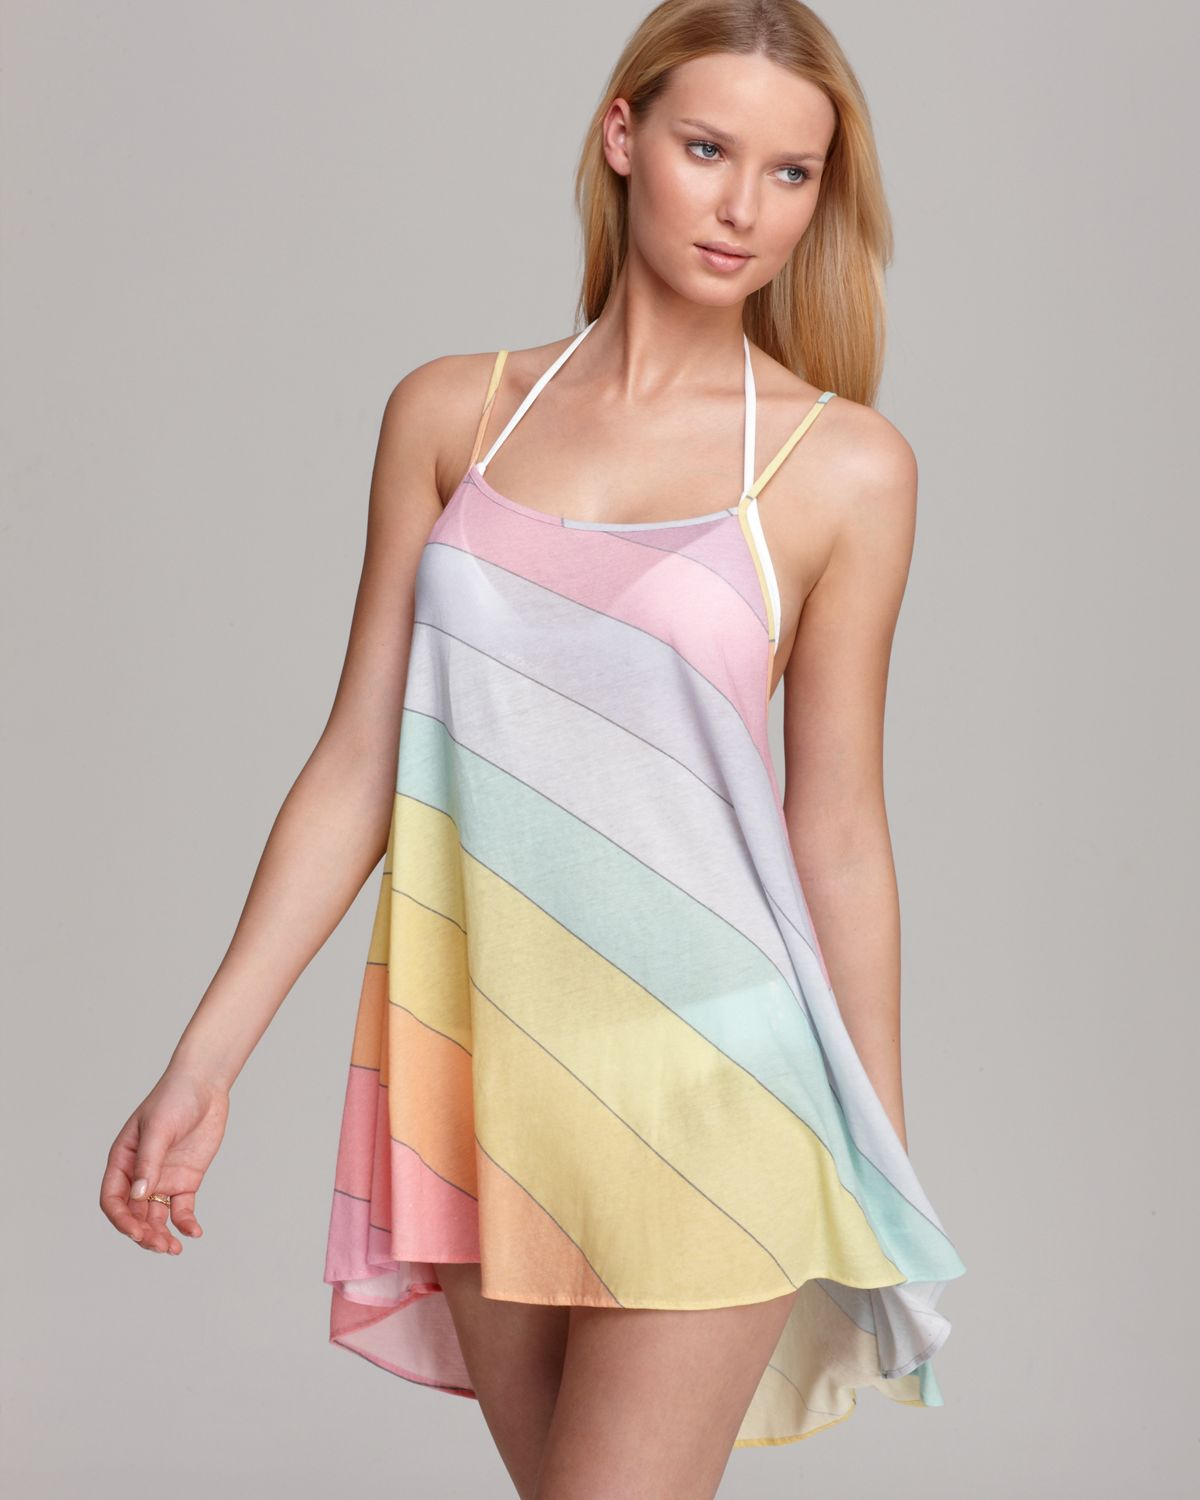 4265f8db0f Wildfox Vintage Rainbow Swimsuit Cover Up in Pink - Lyst